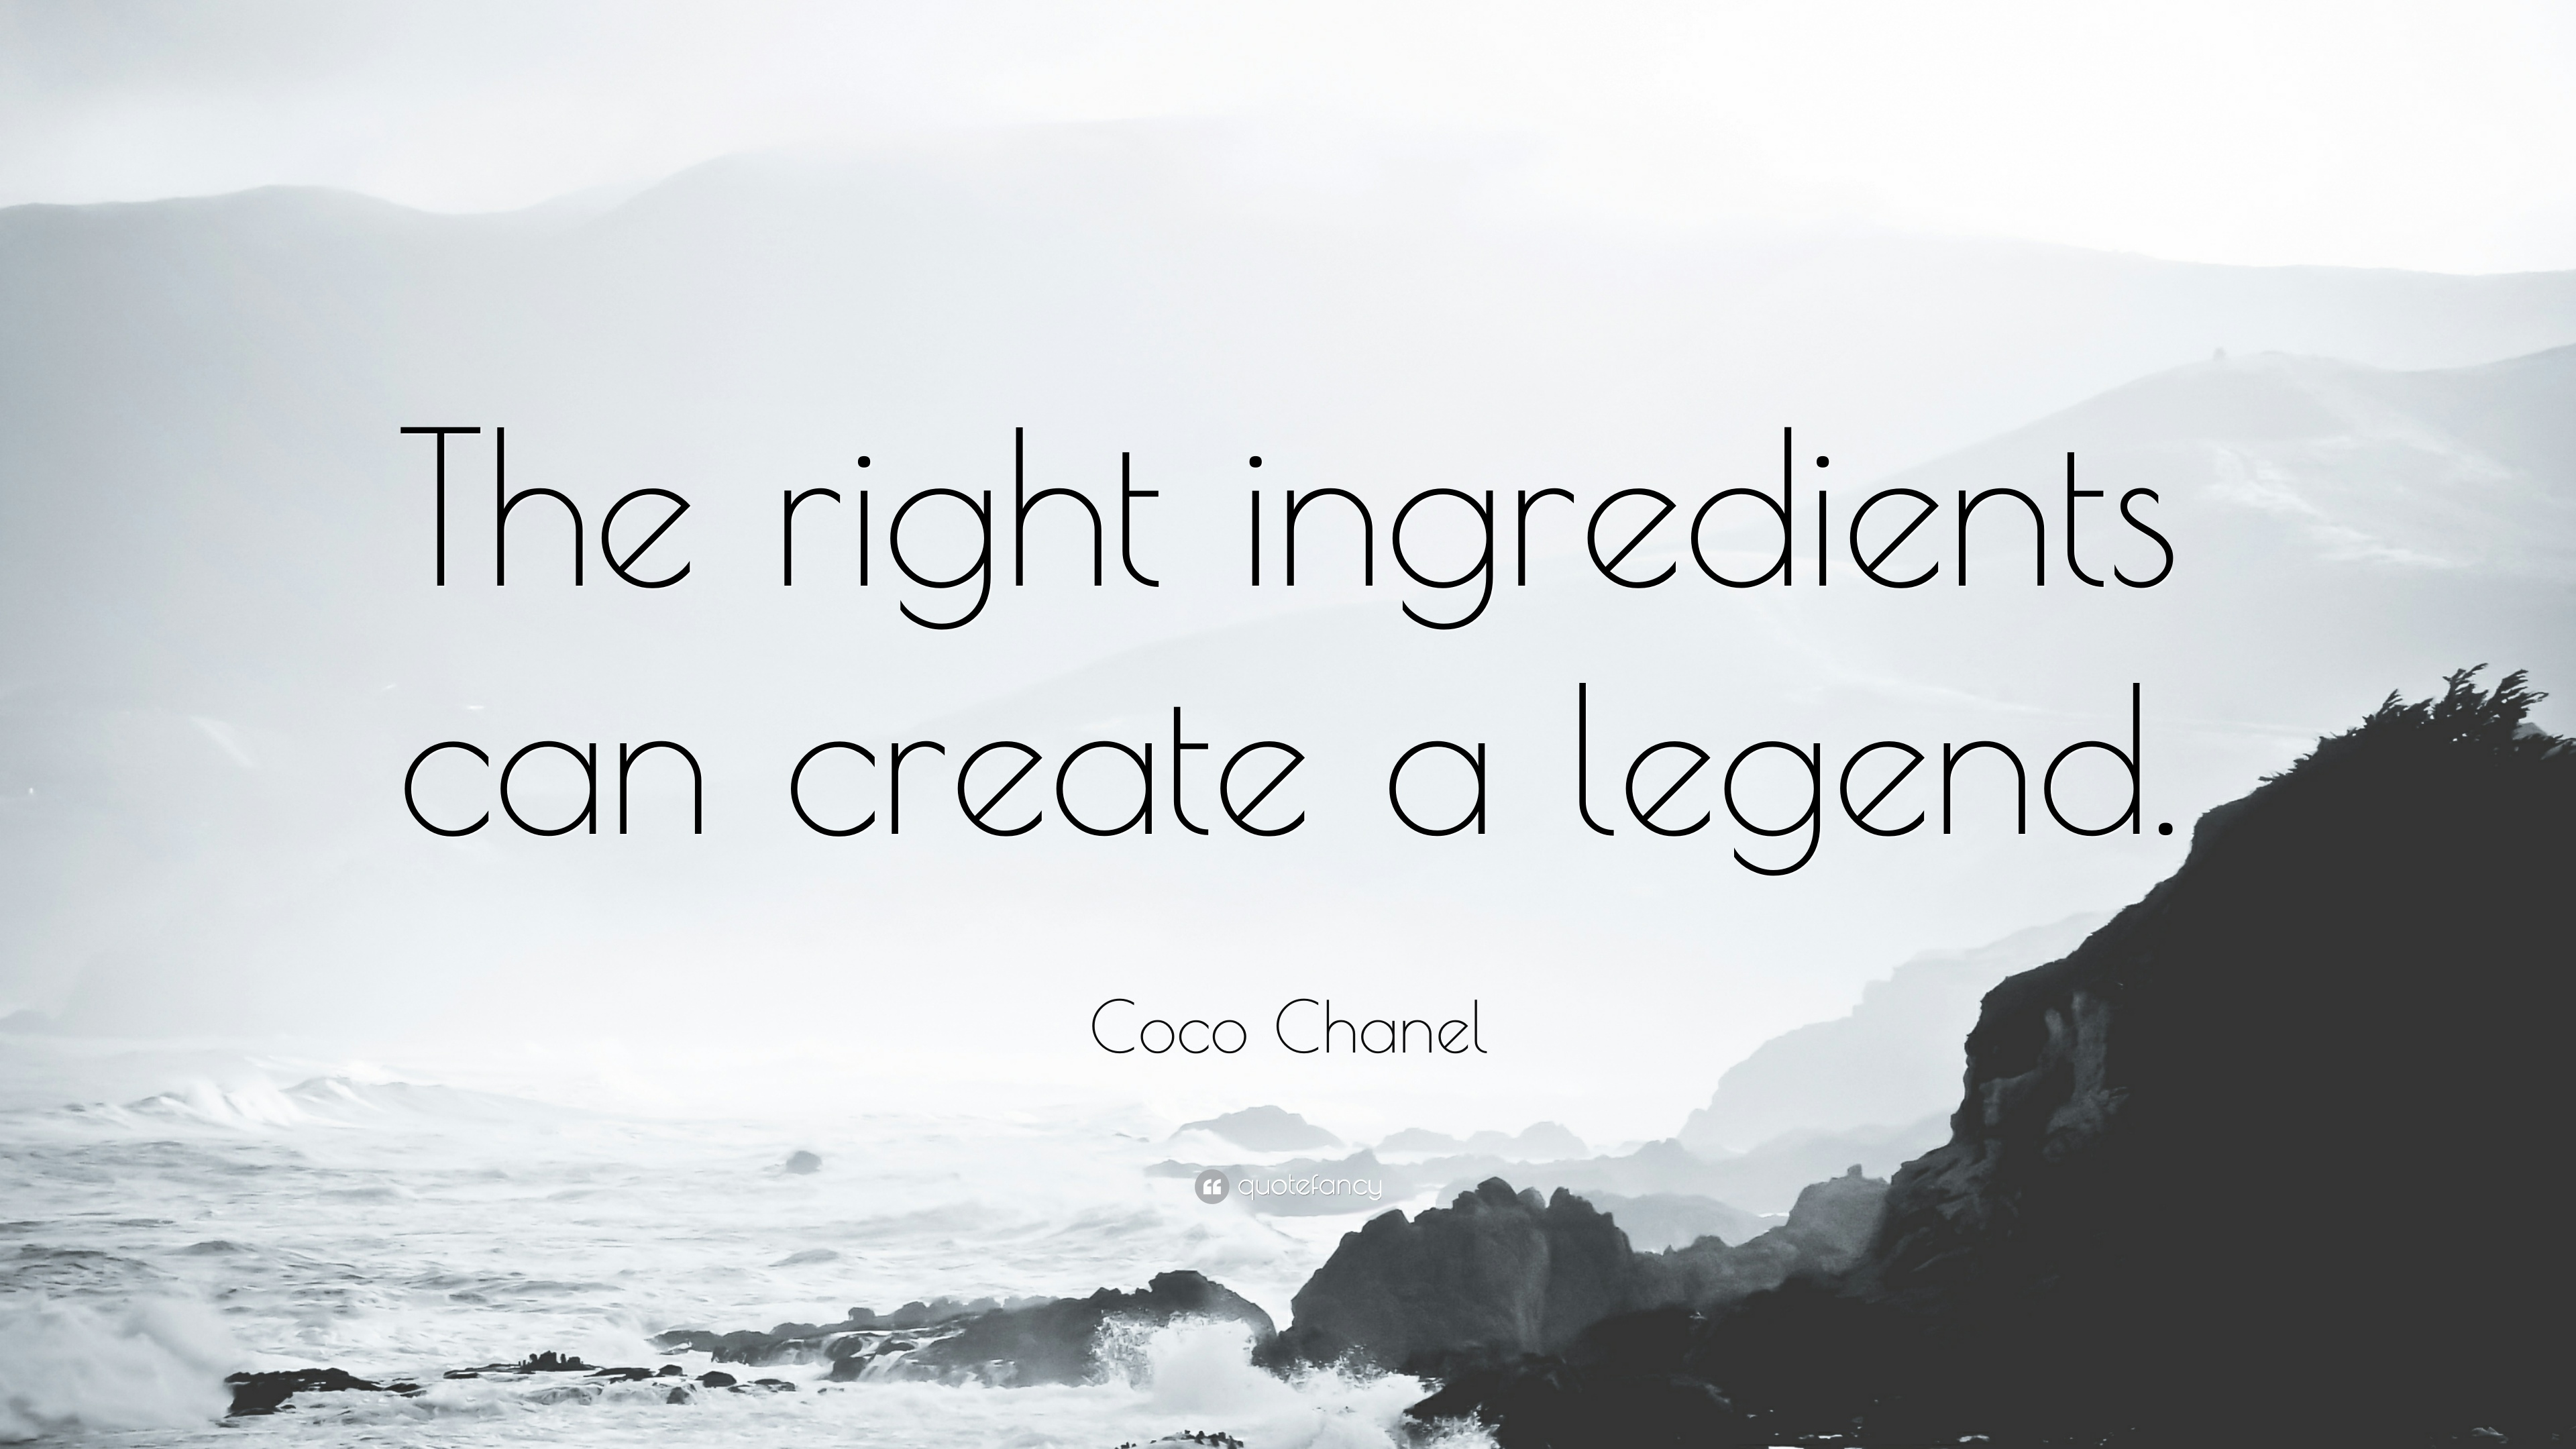 12 Wallpapers Coco Chanel